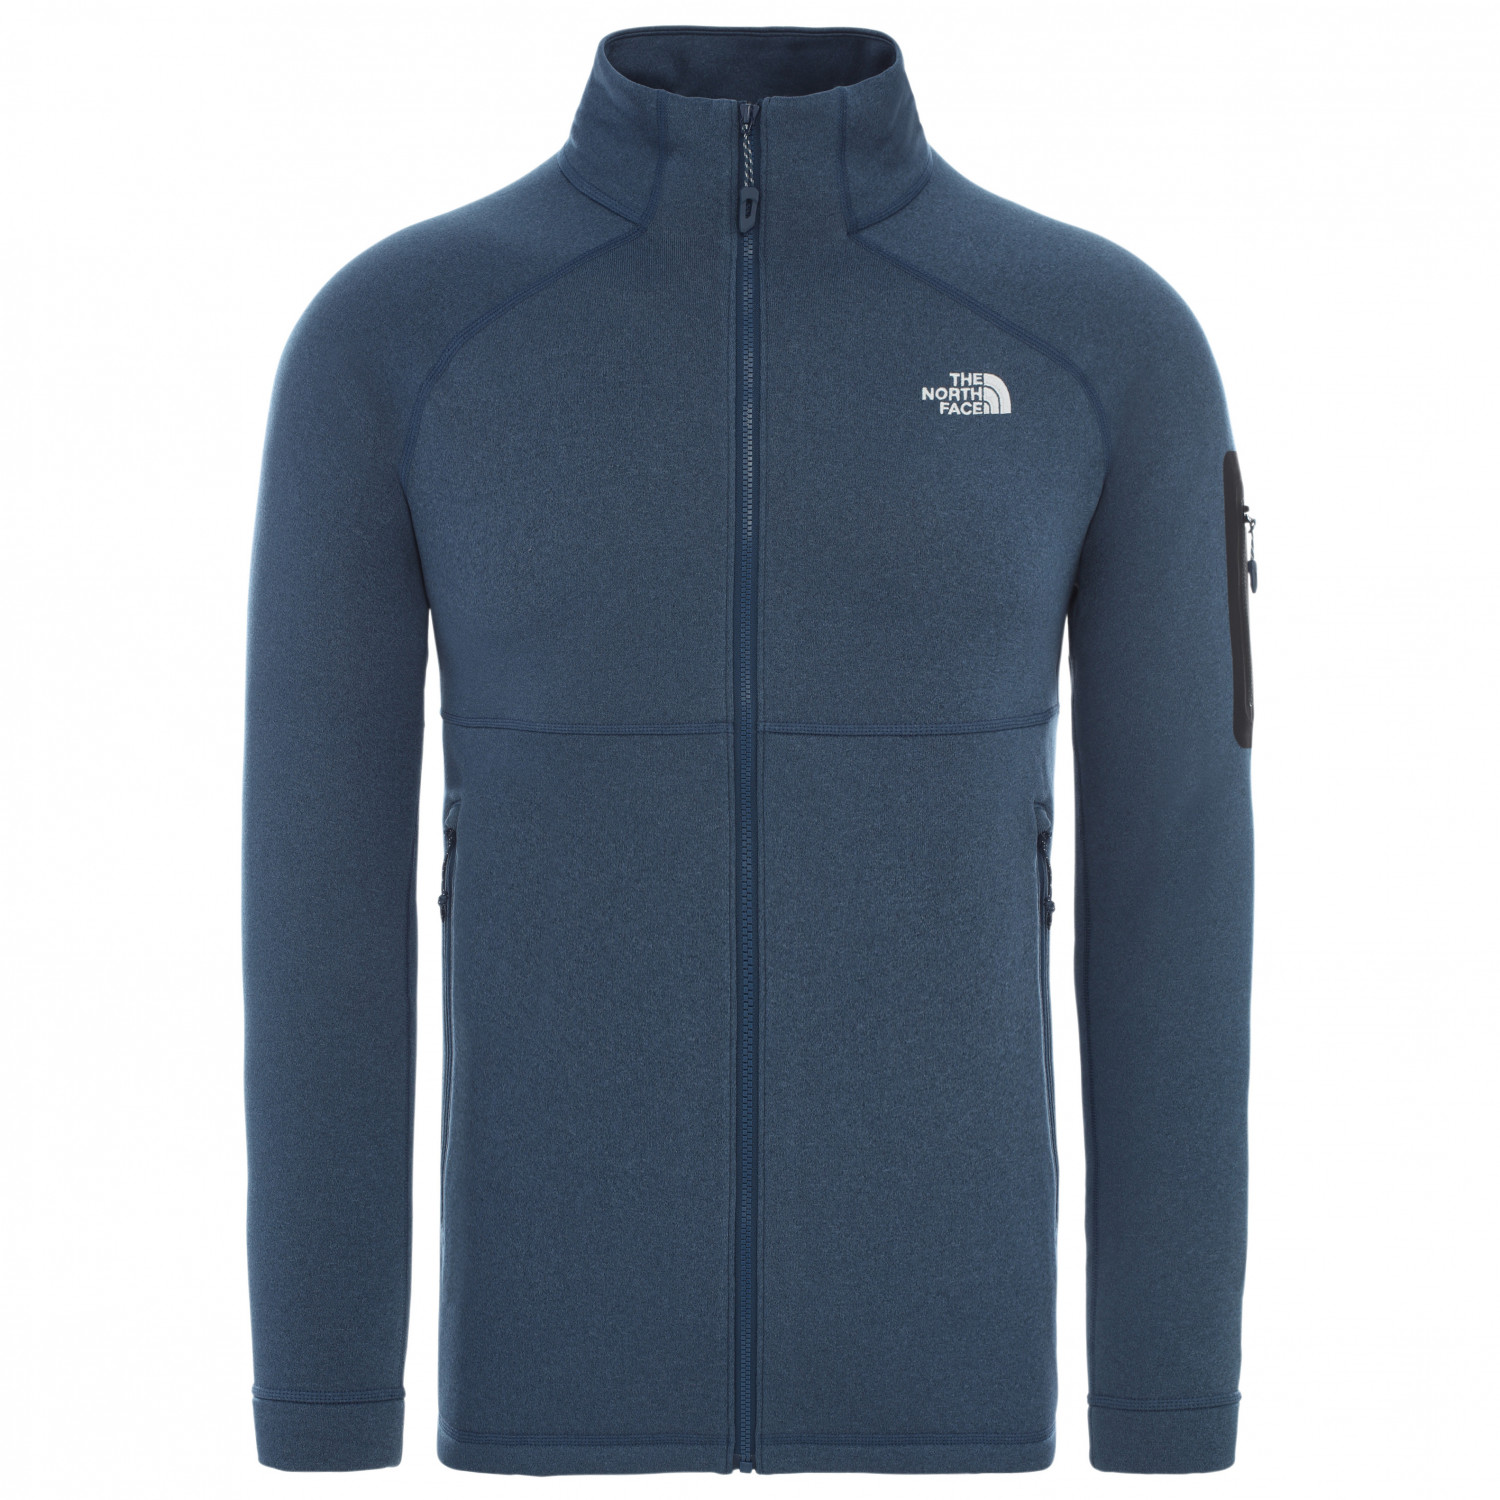 The North Face Impendor Powerdry Jacket -